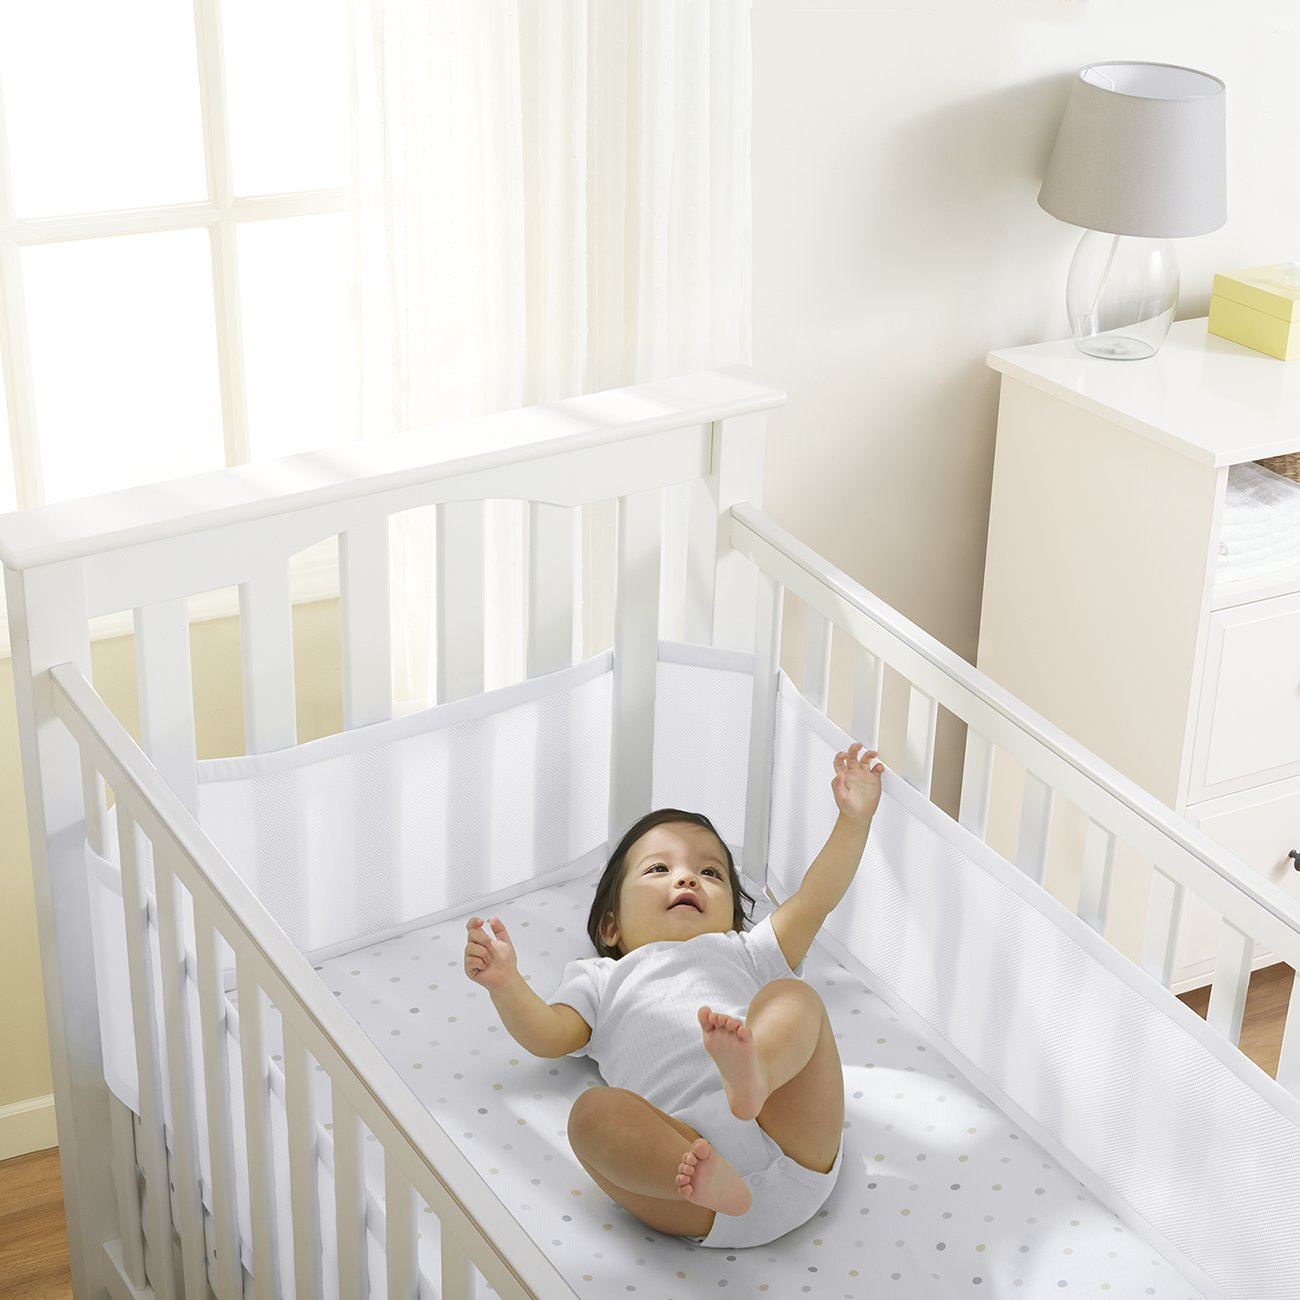 Baby bed that hooks to bed - Baby Bed That Hooks To Bed 39